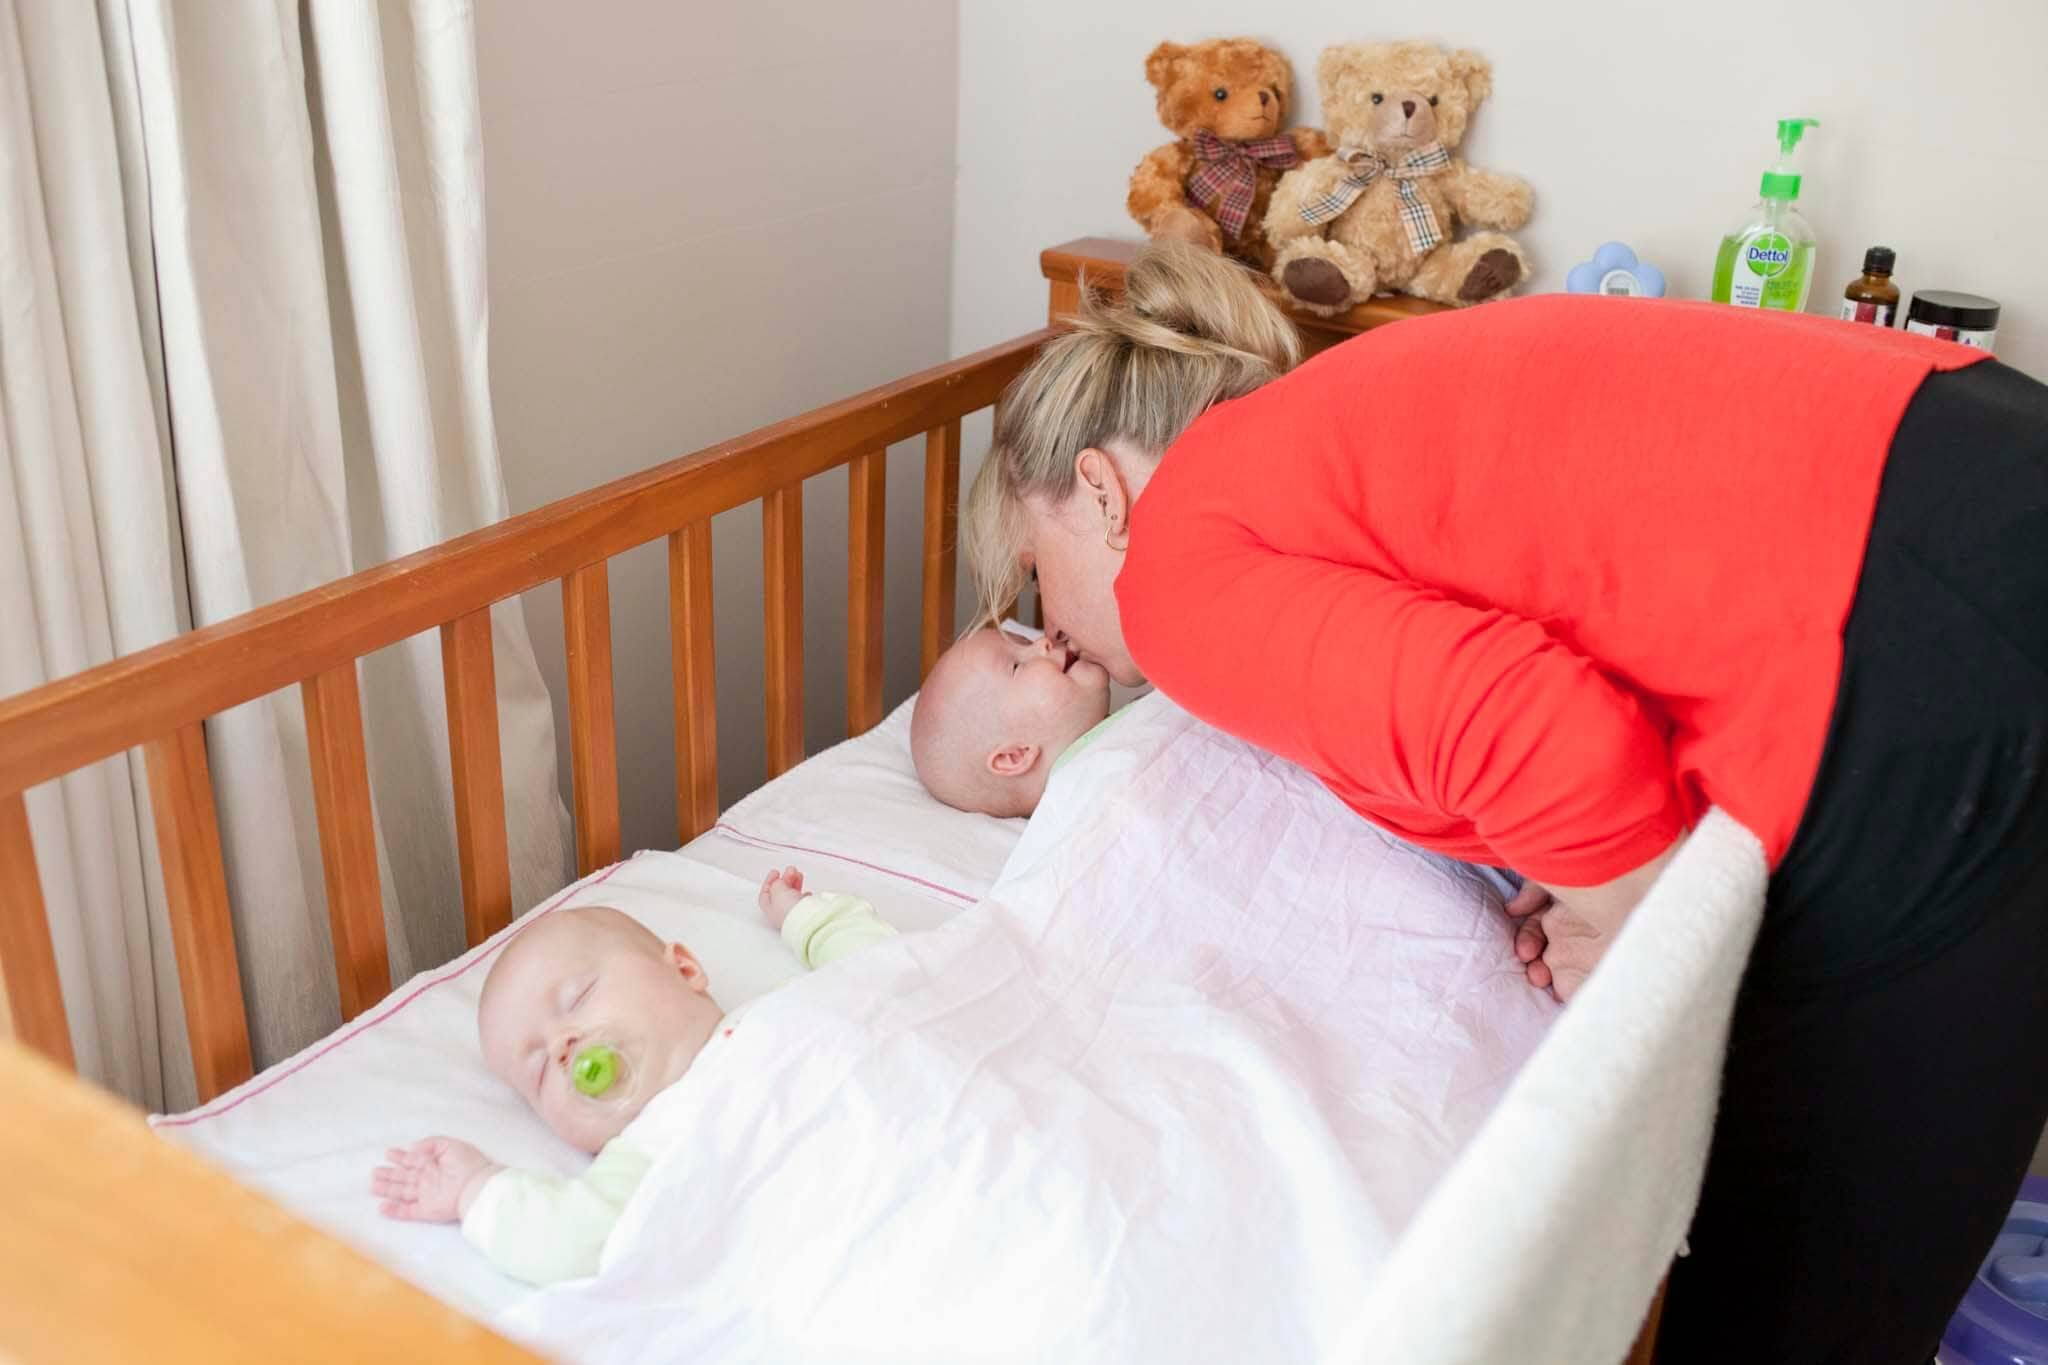 Twins Sleeping in Cot